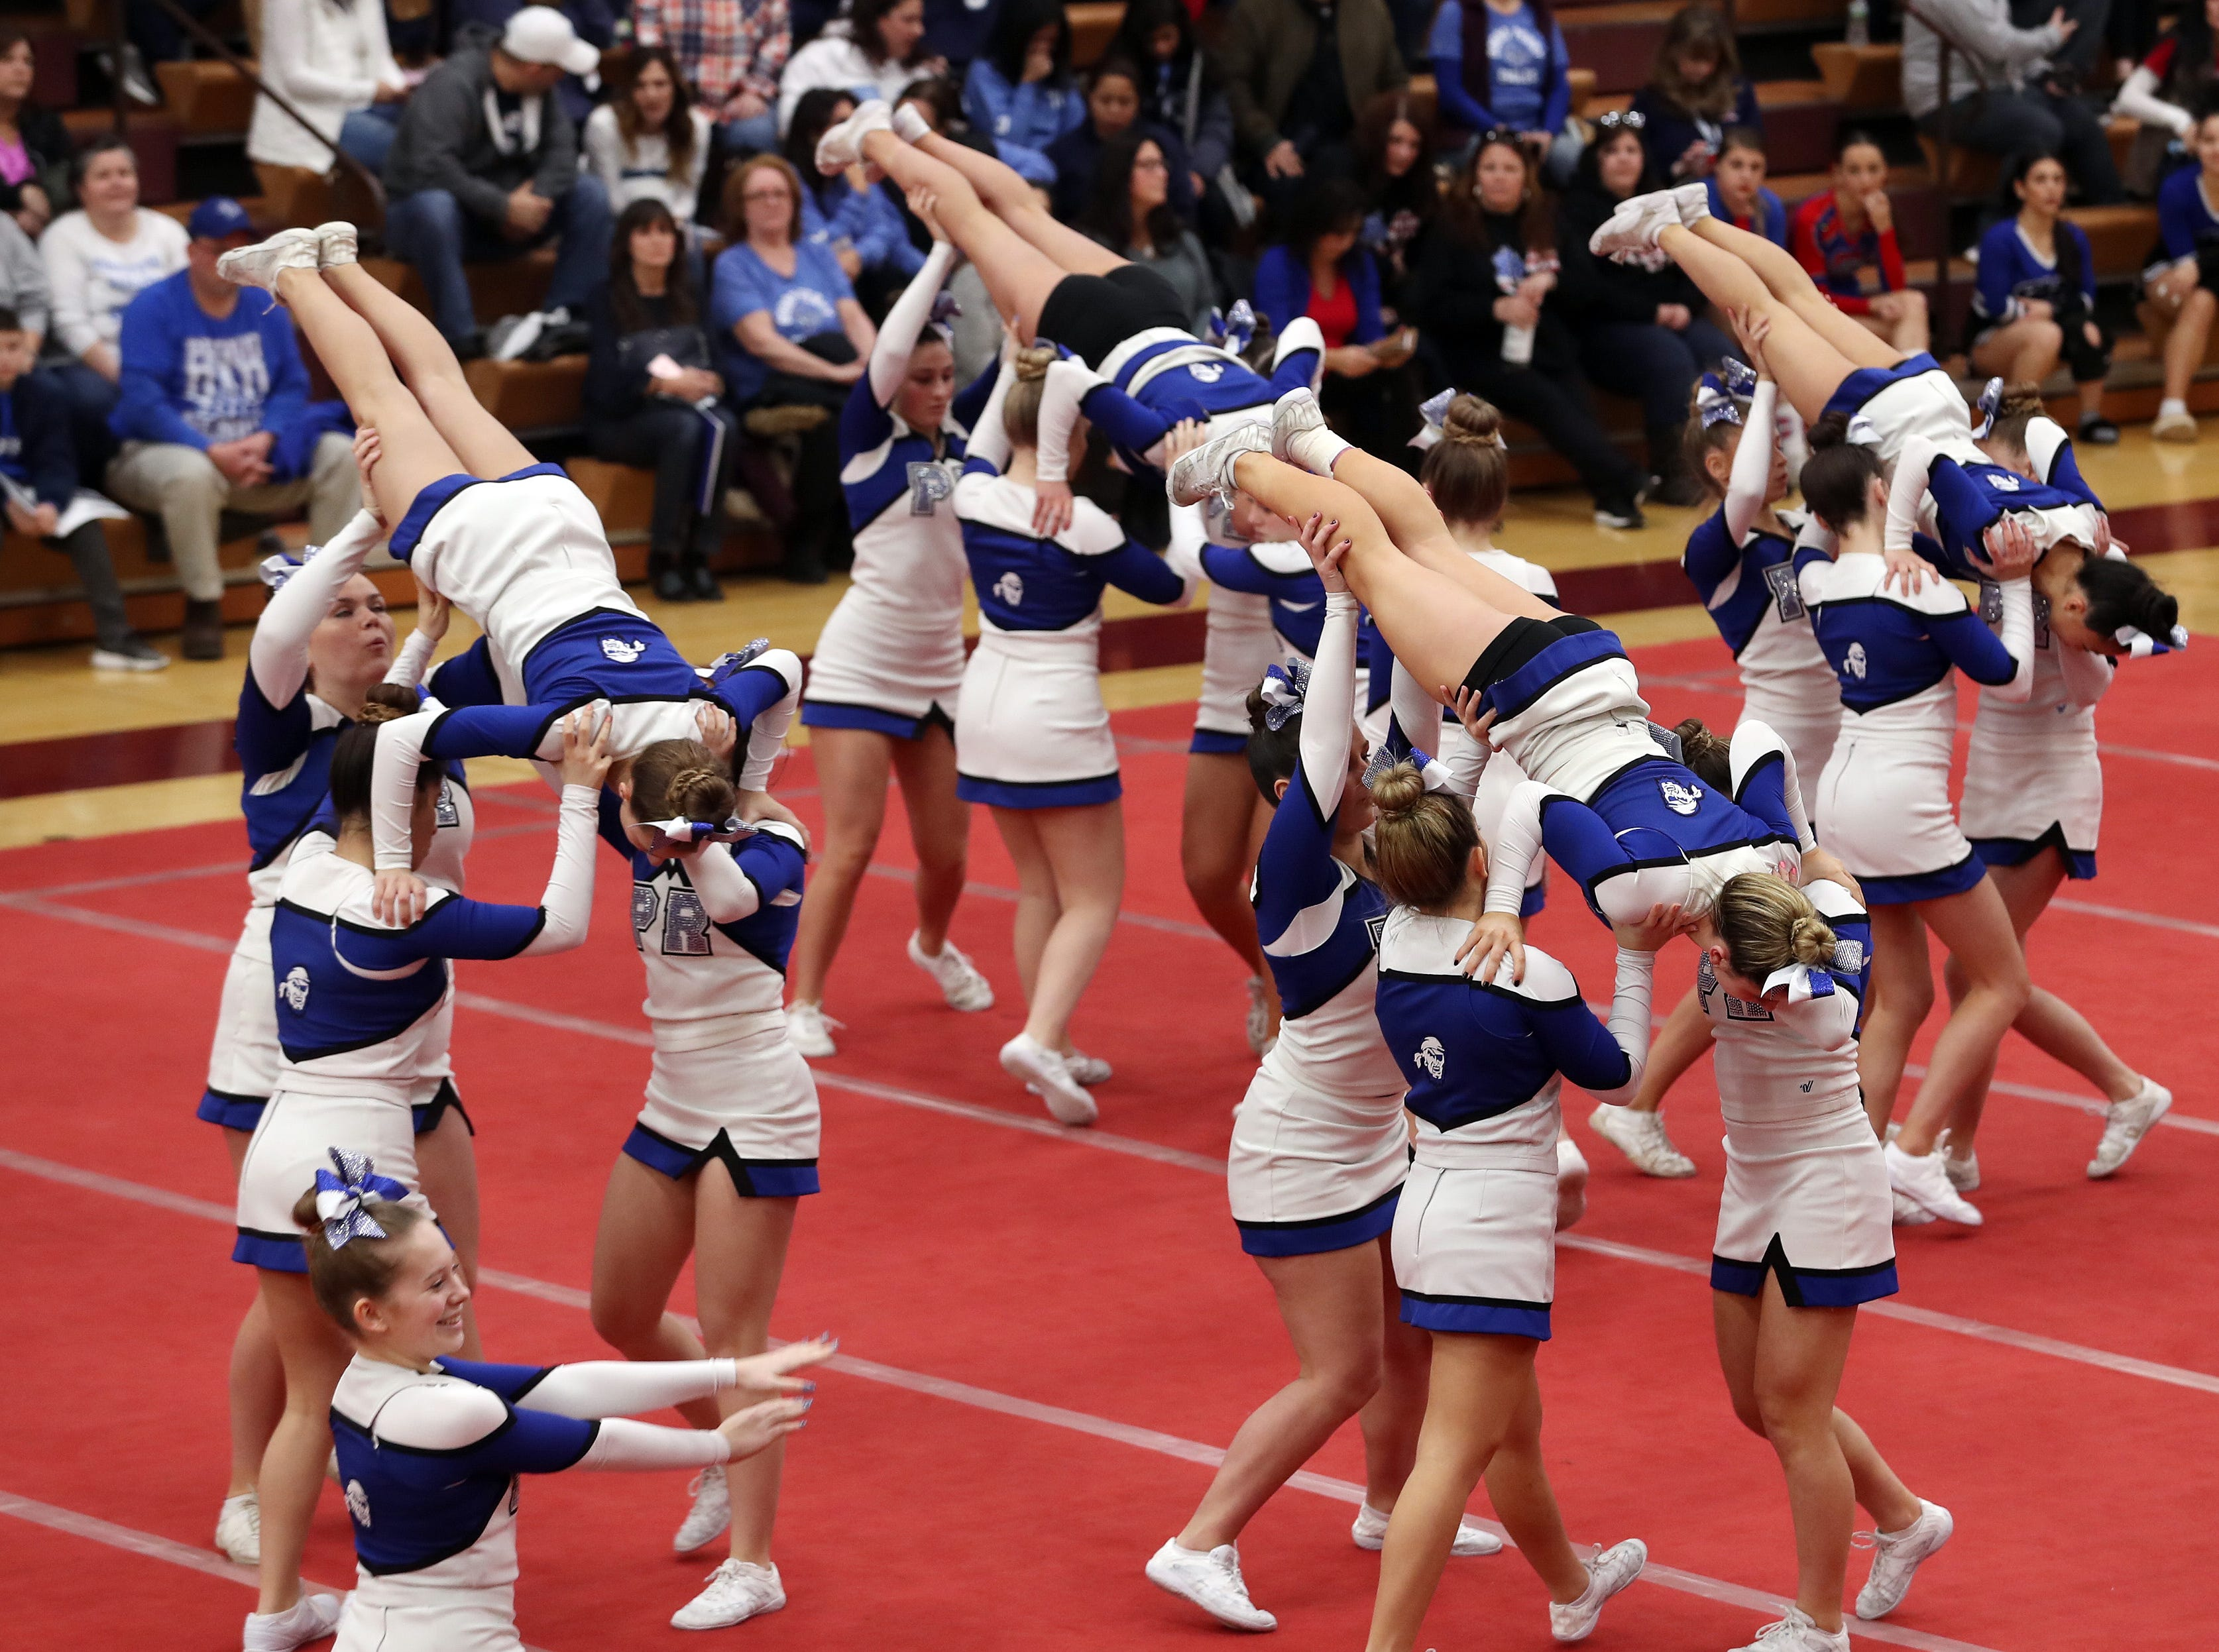 Pearl River High School competes during the Section 1 cheerleading championships at Arlington High School in Freedom Plains Feb. 16, 2019.